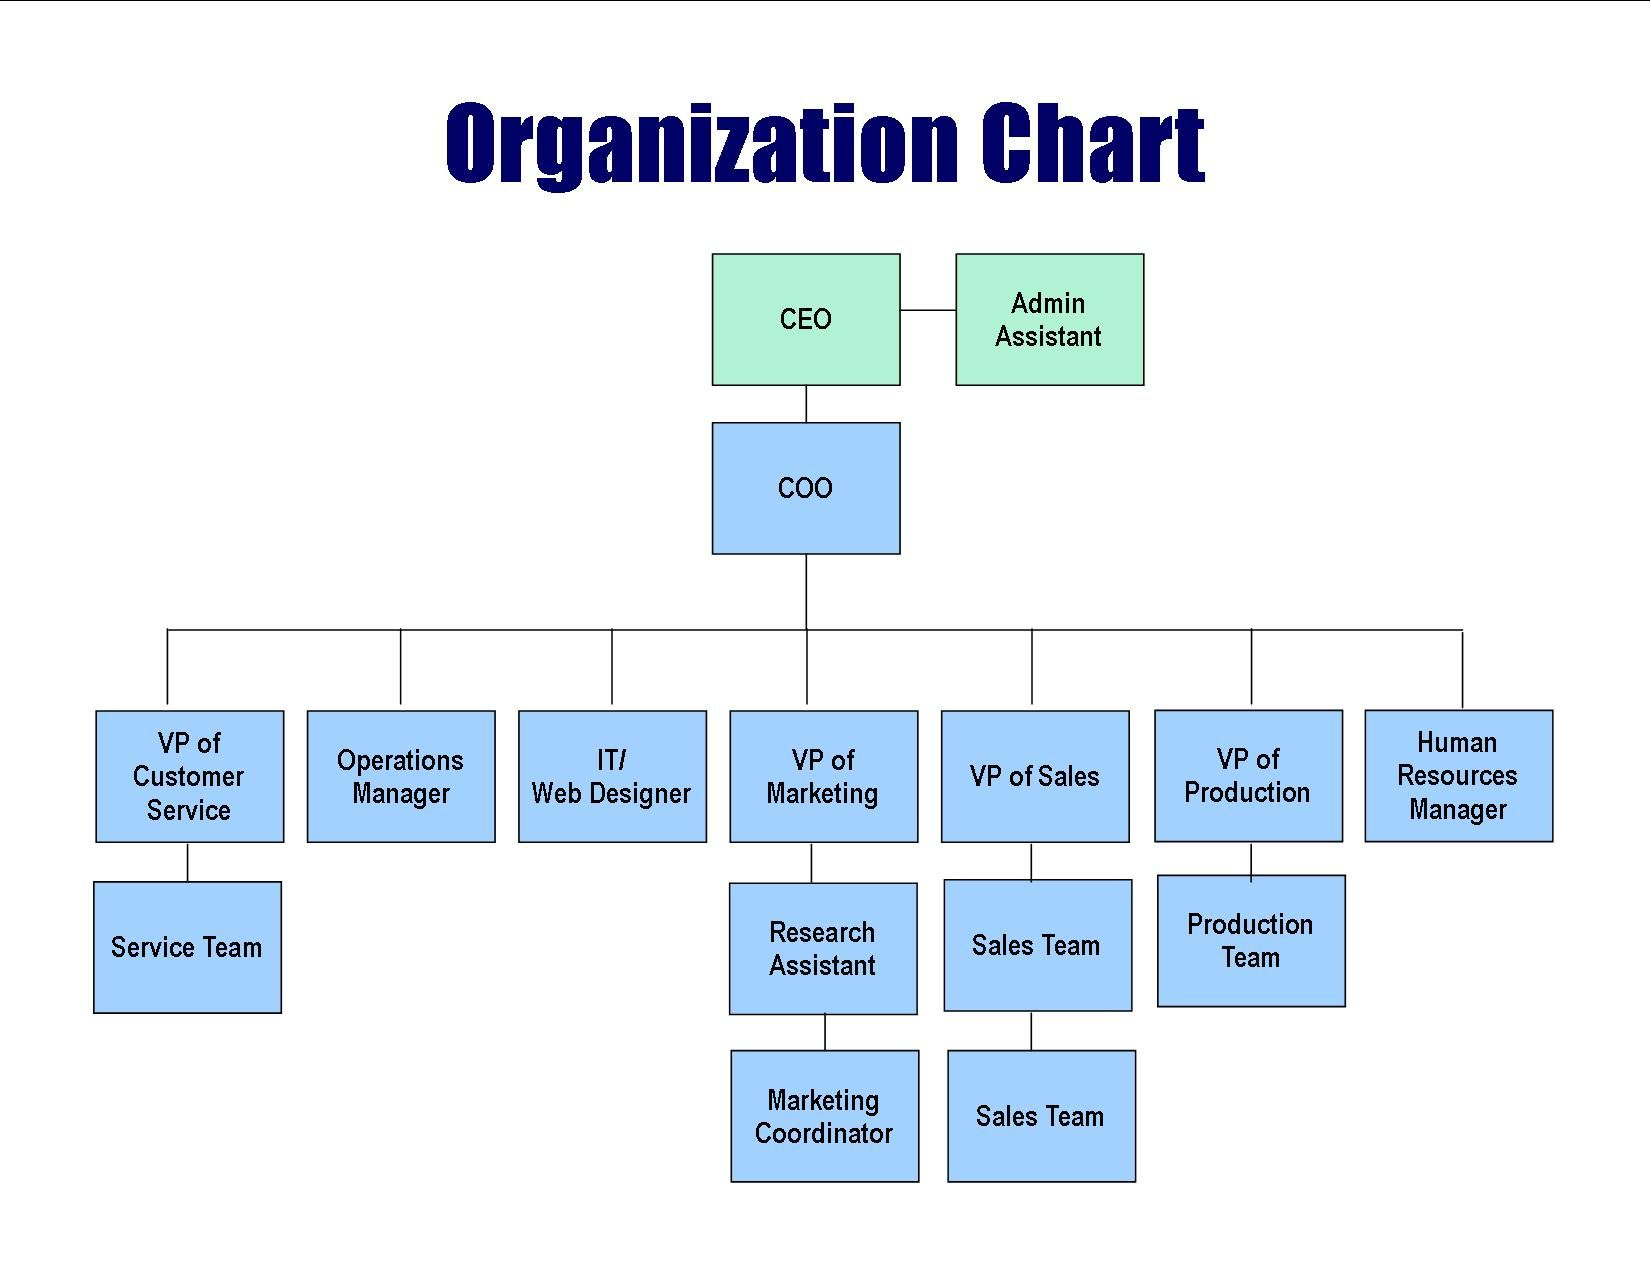 Small business organizational structure chart helping women owners at grants gov businessp also rh pinterest